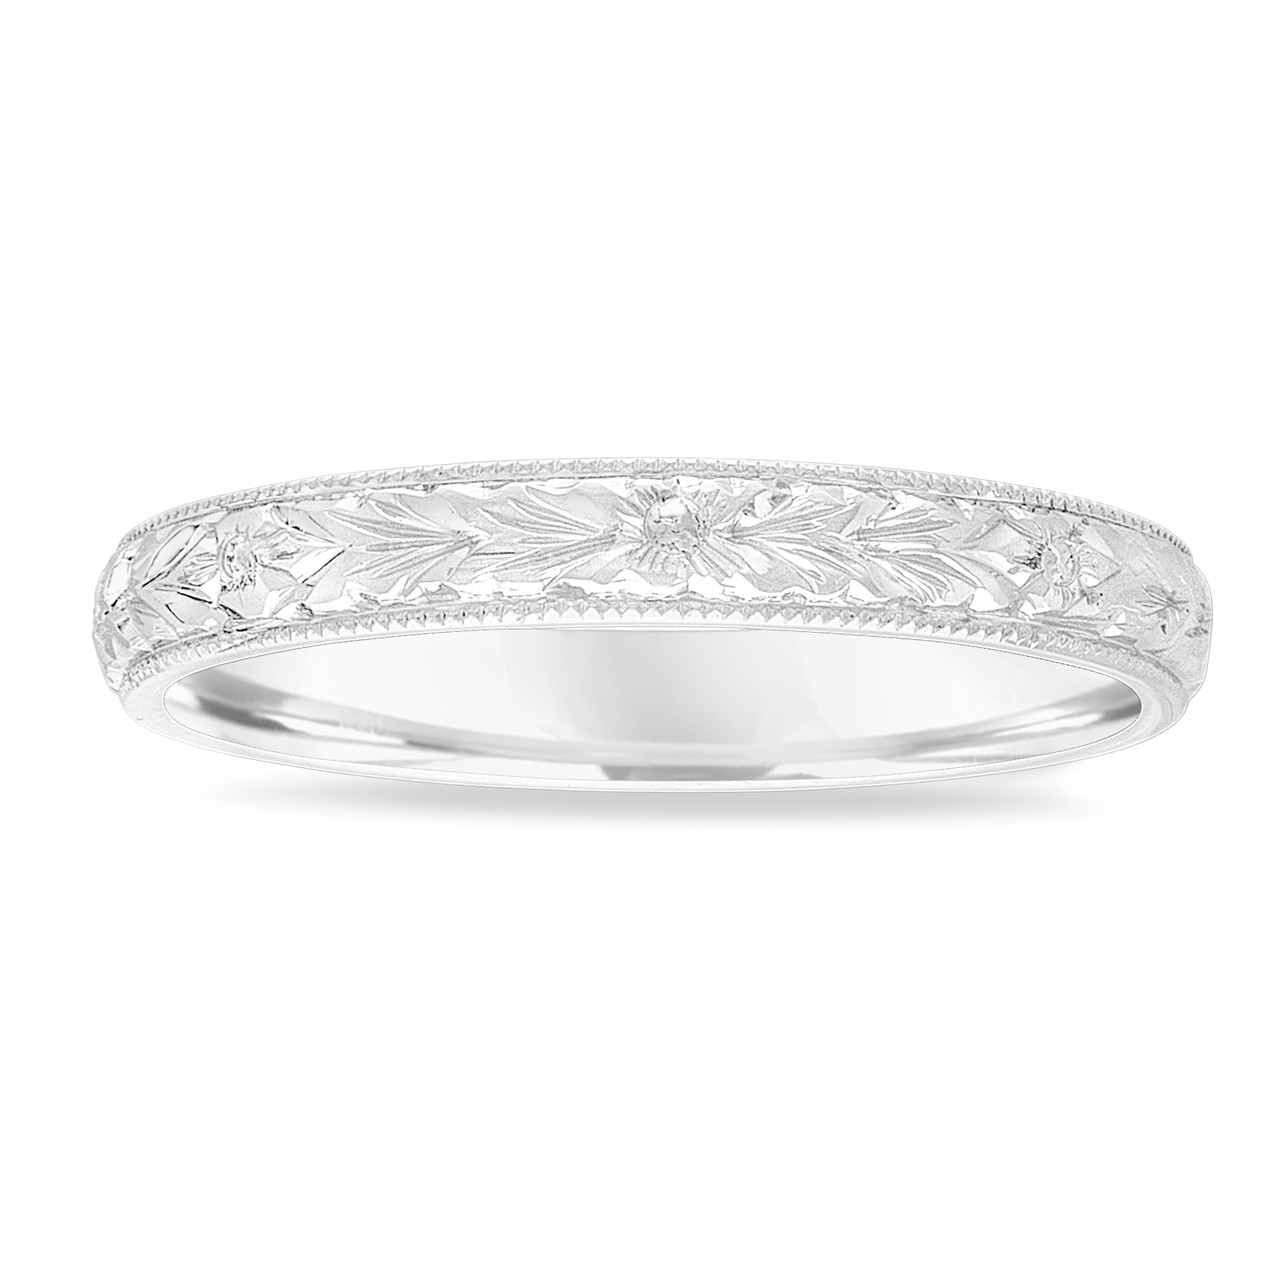 Hand Engraved Wedding Band 18k White Gold Vintage Ring Womens Unique